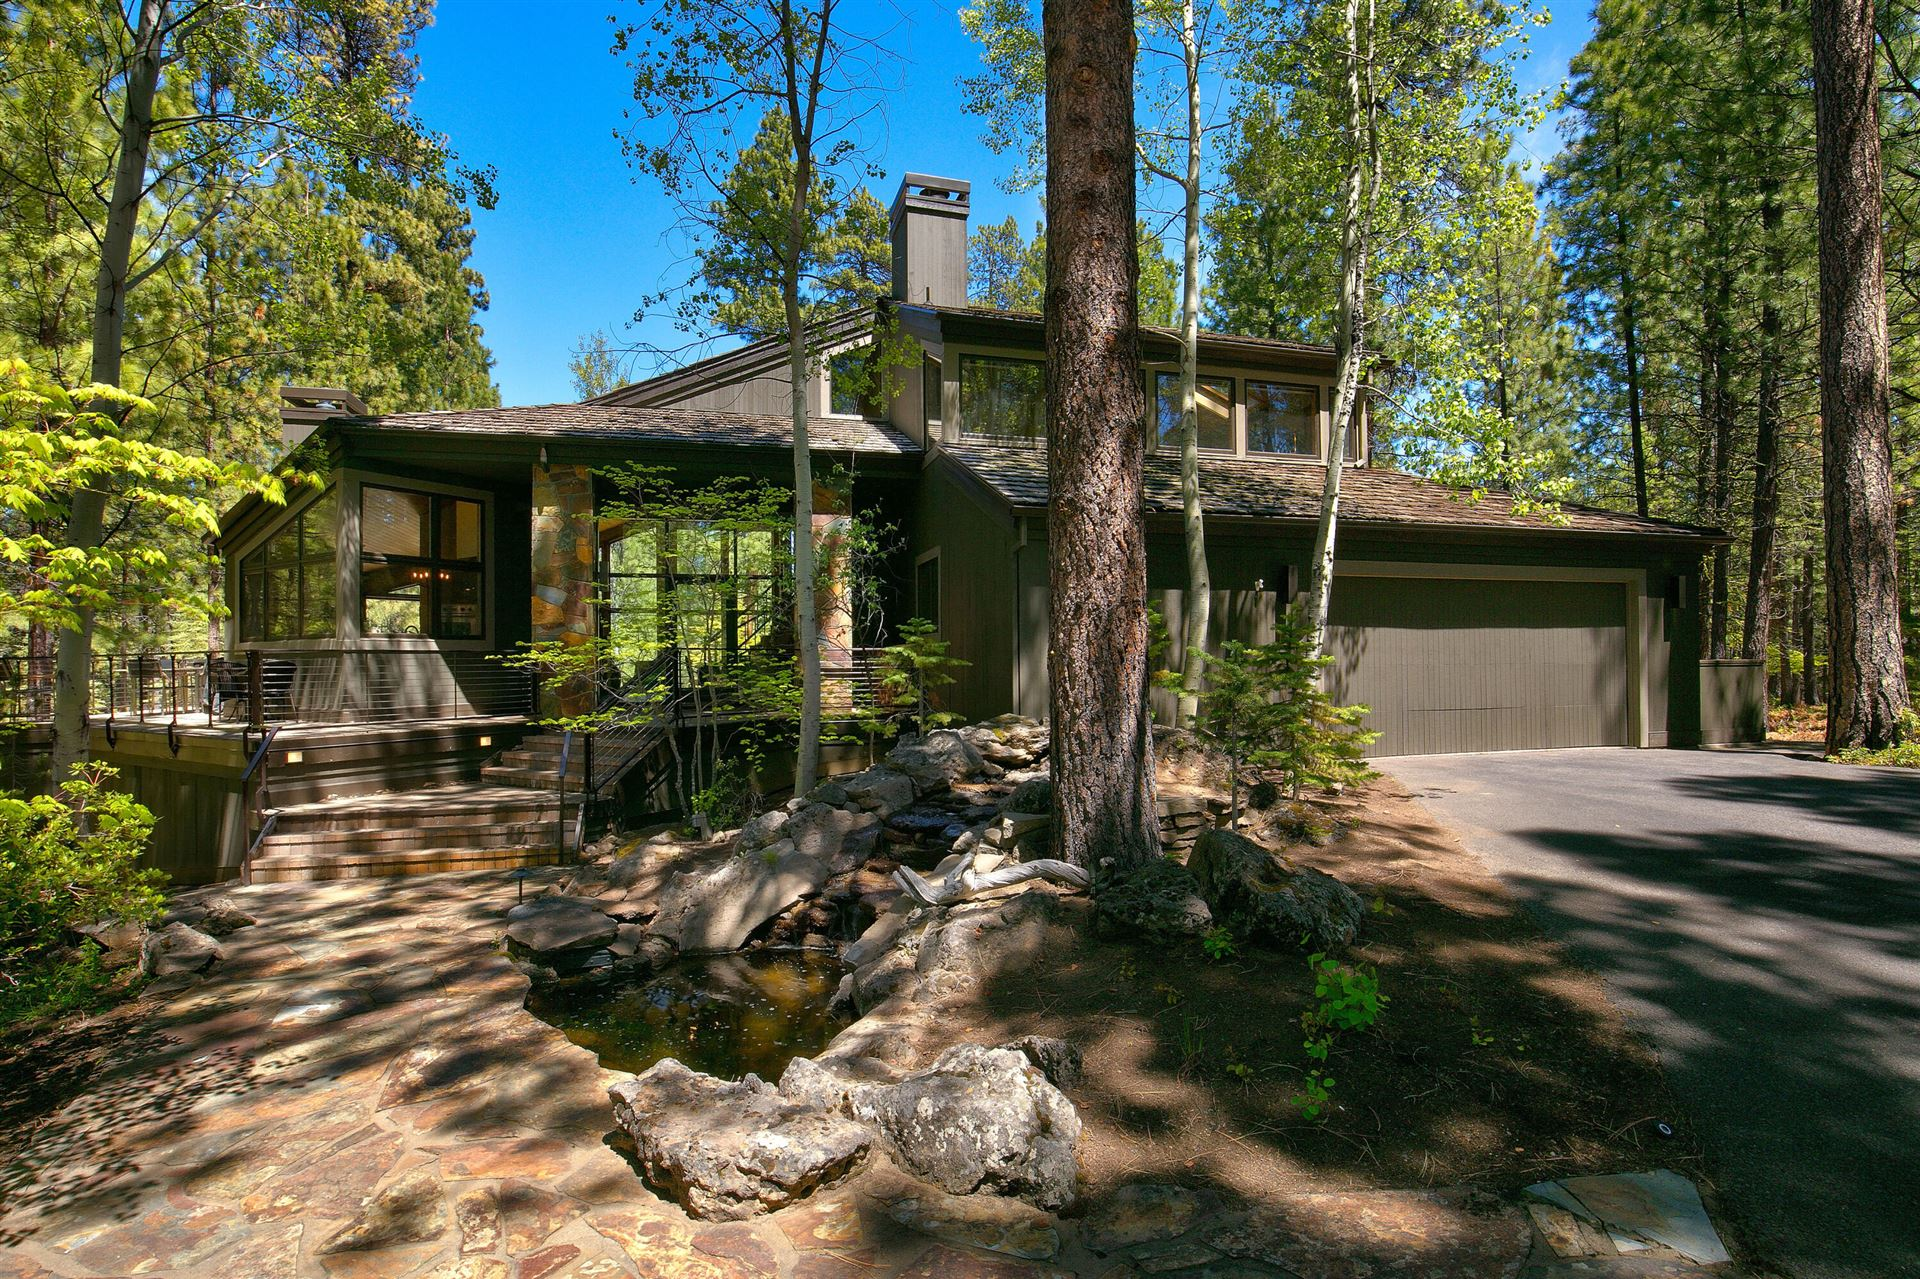 Photo of 13448 Foin-Follette #GM301, Black Butte Ranch, OR 97759 (MLS # 220112898)